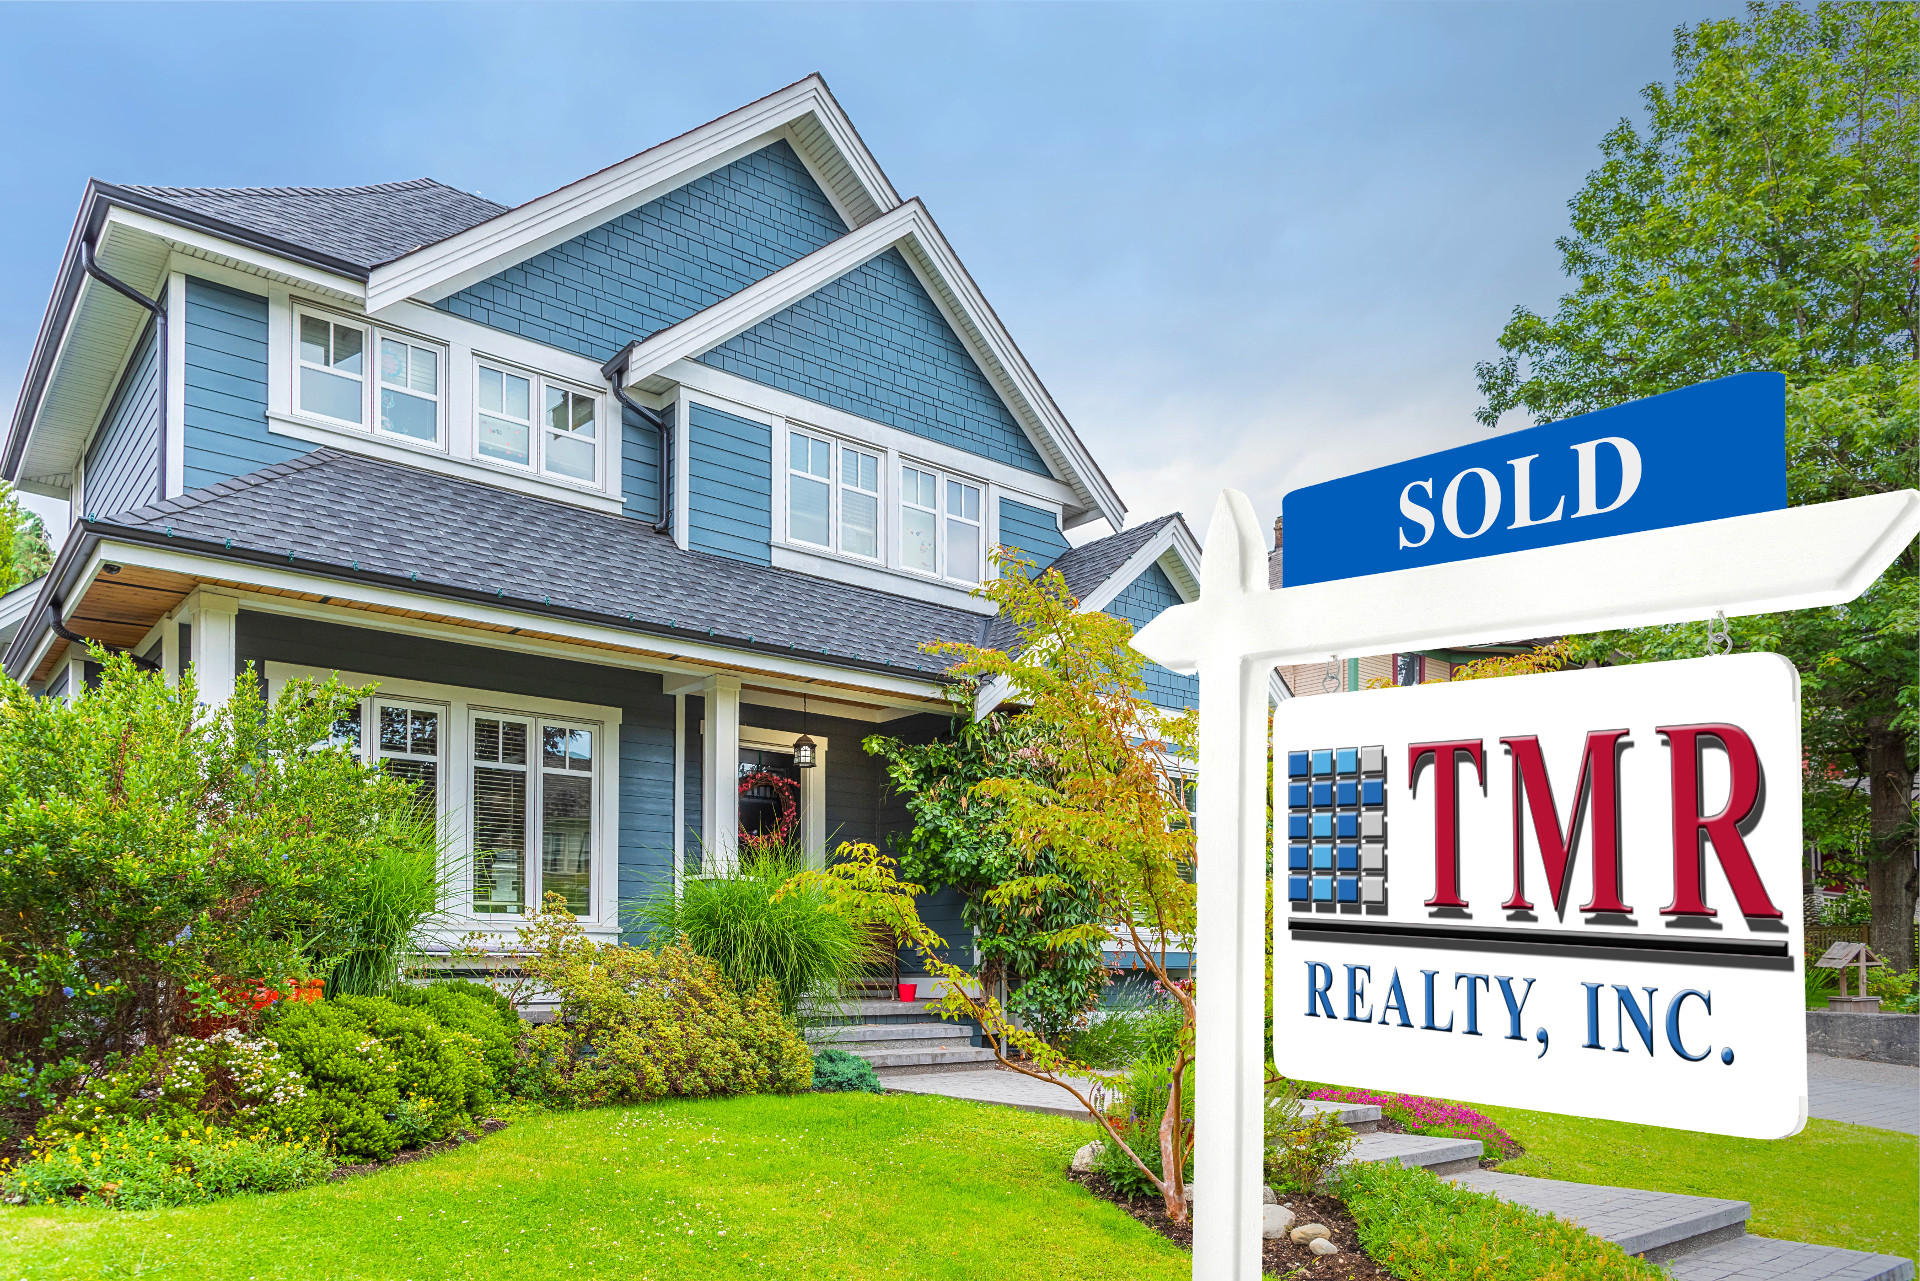 photo of home with TMR Realty signage